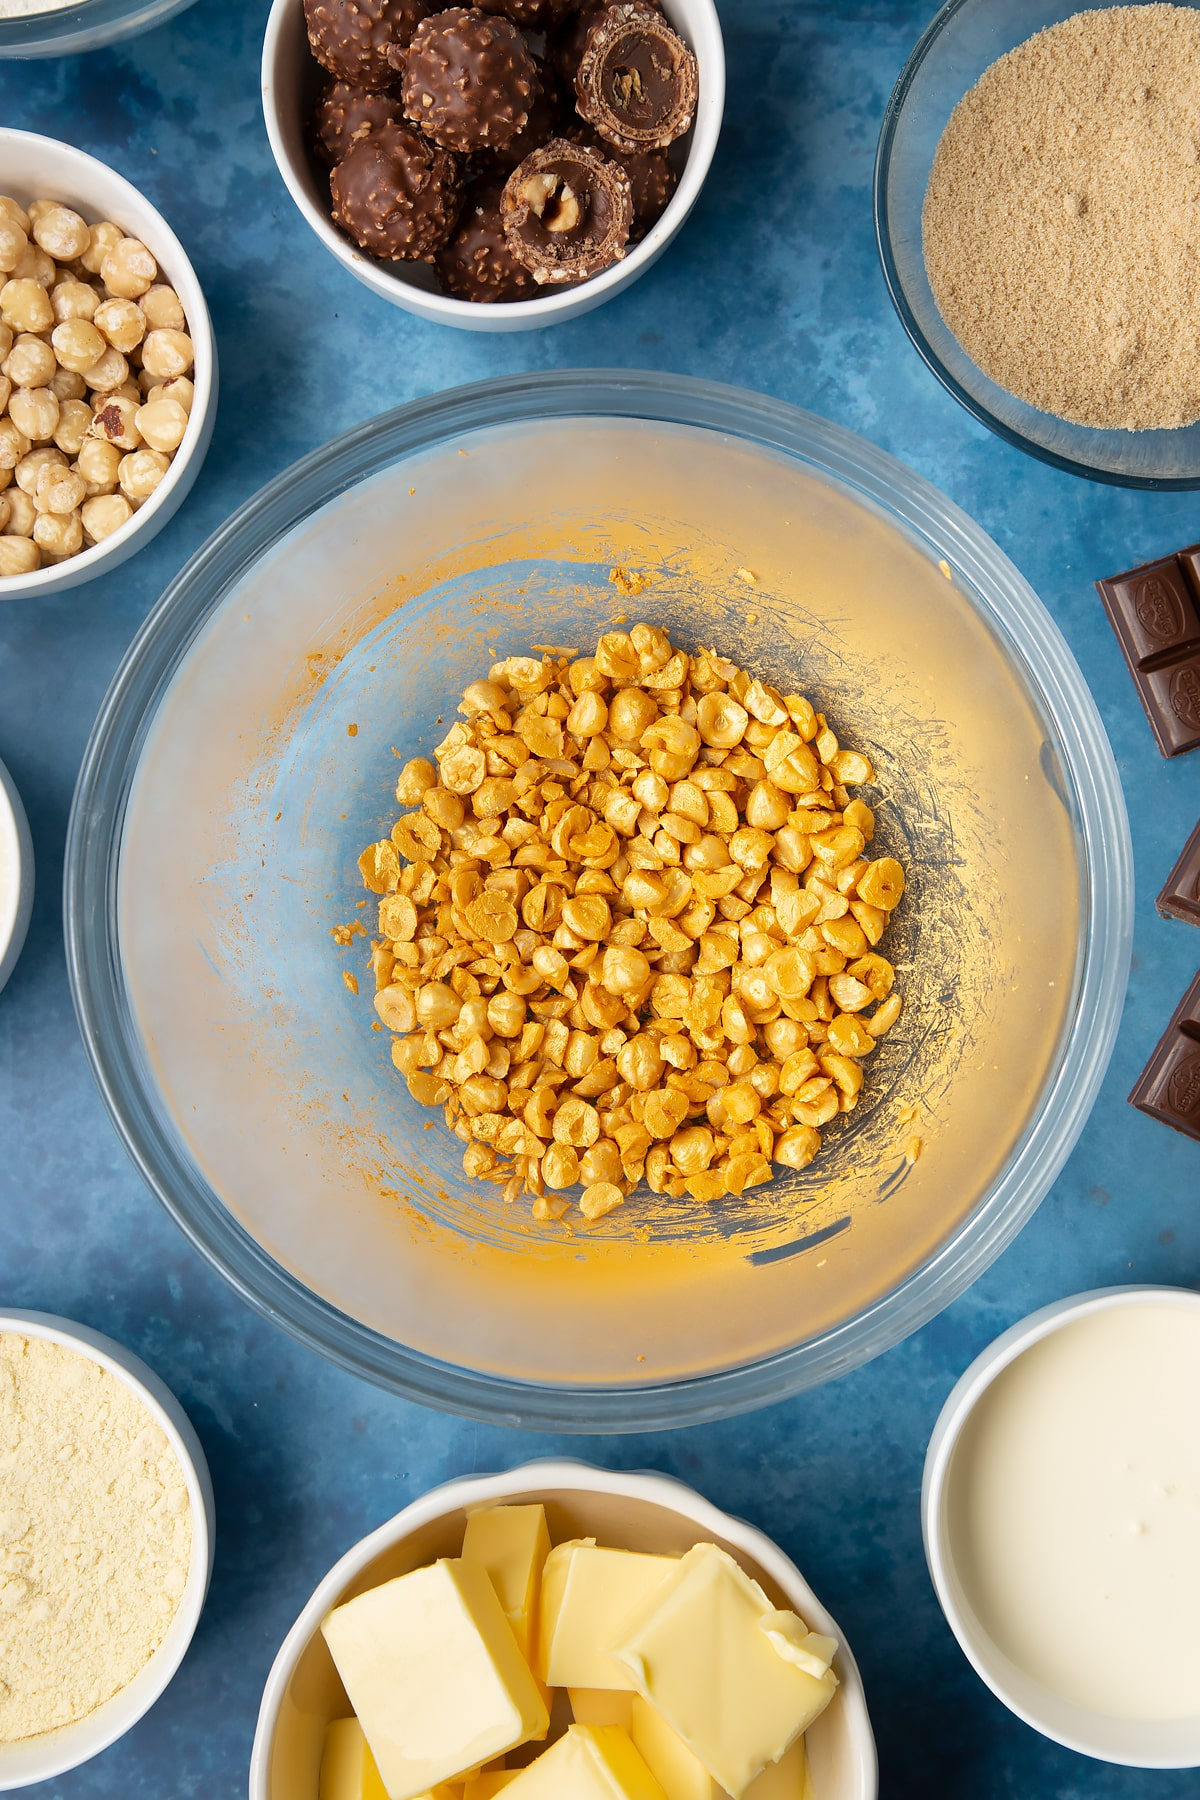 Chopped hazelnuts sprayed gold in a glass mixing bowl. Ingredients to make a Ferrero Rocher slice surround the bowl.